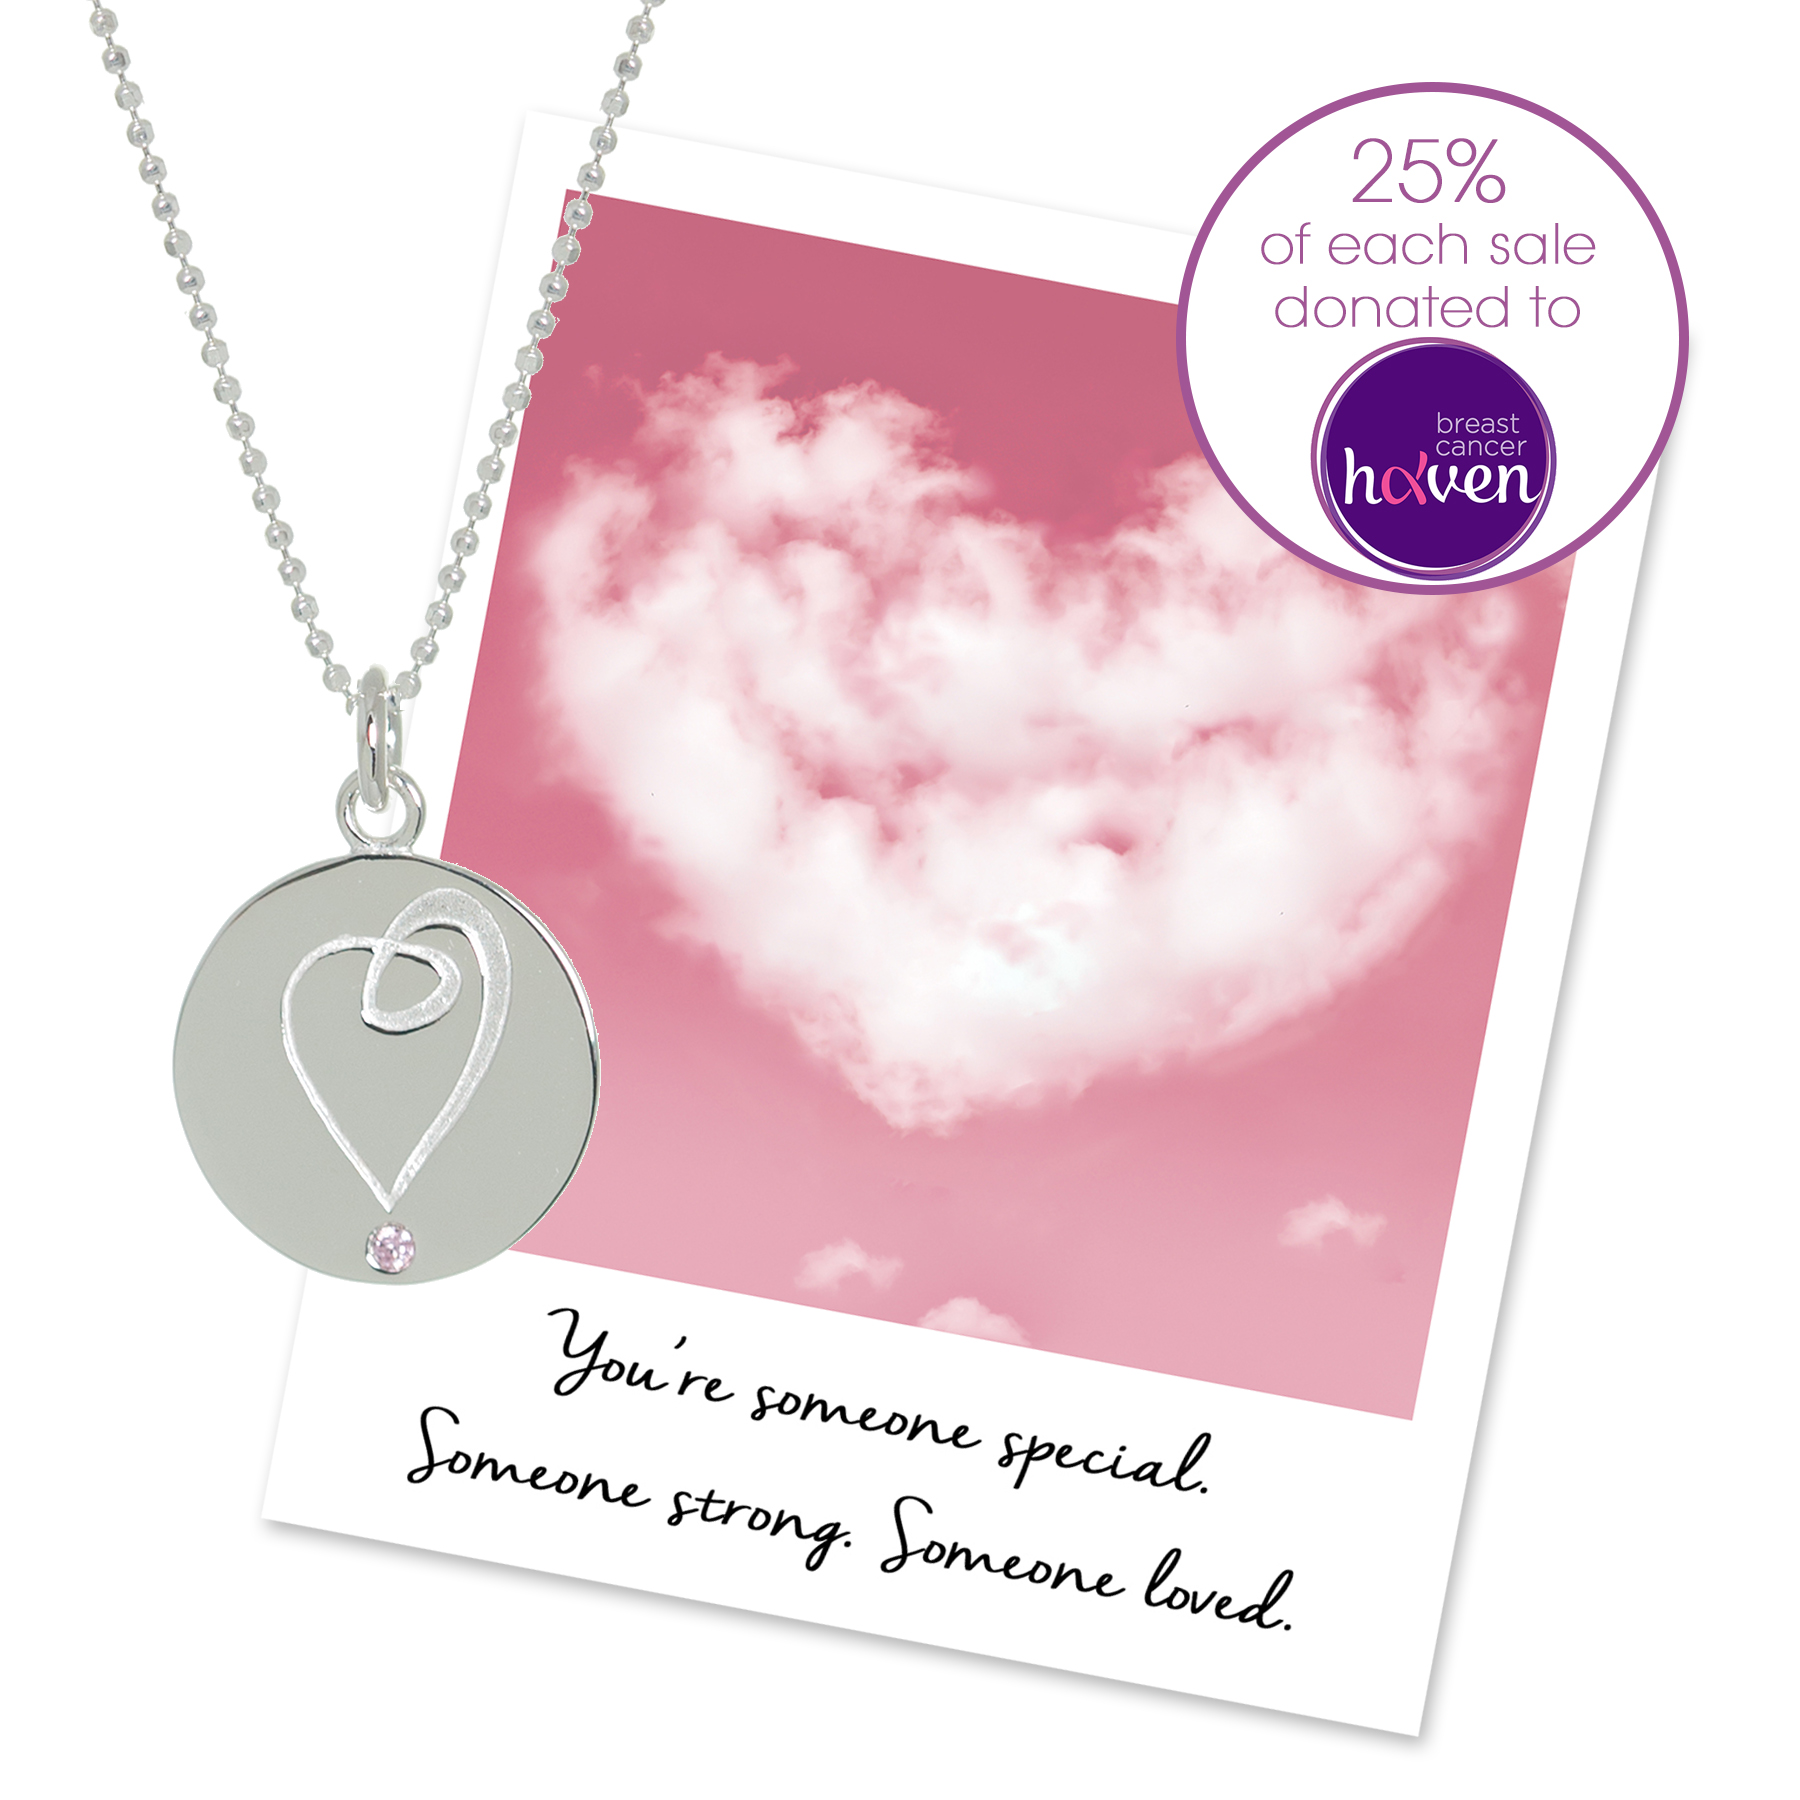 breast cancer haven necklace